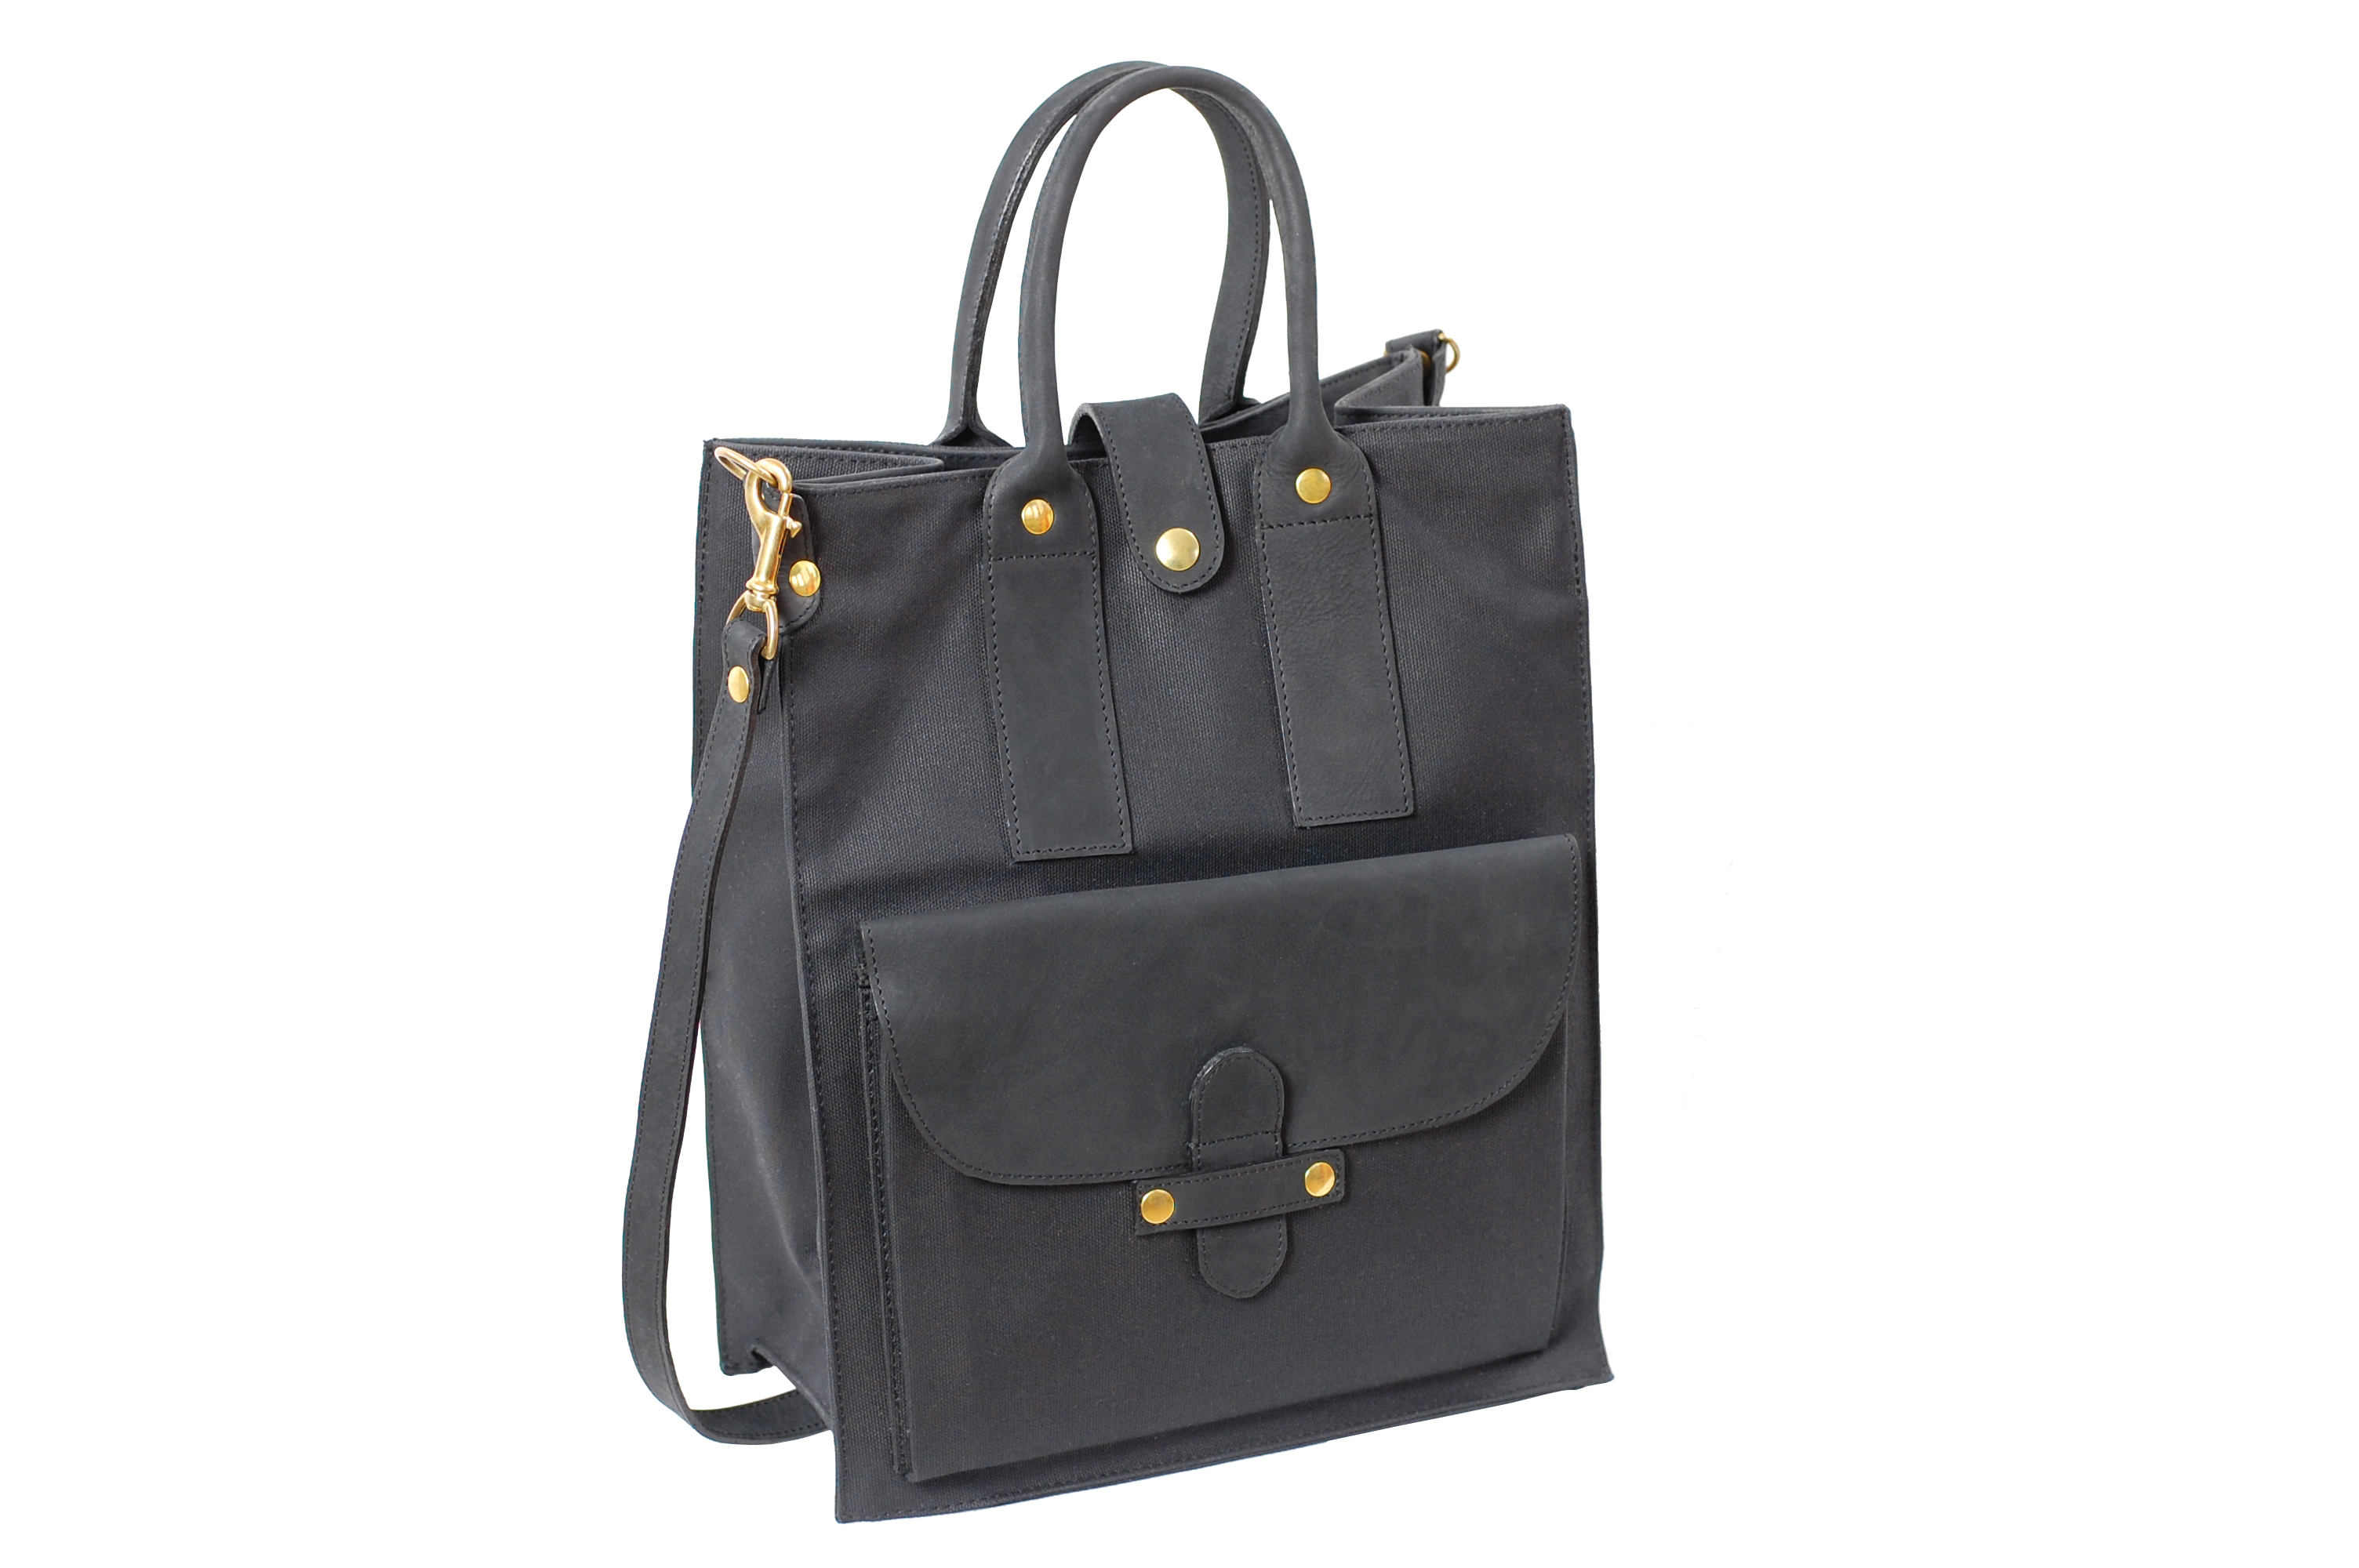 mahiout bags, ACD tote in black waxed cotton canvas, leahter and solid brass fittigns, http://www.mahiout.com, http://www.contractor48.com